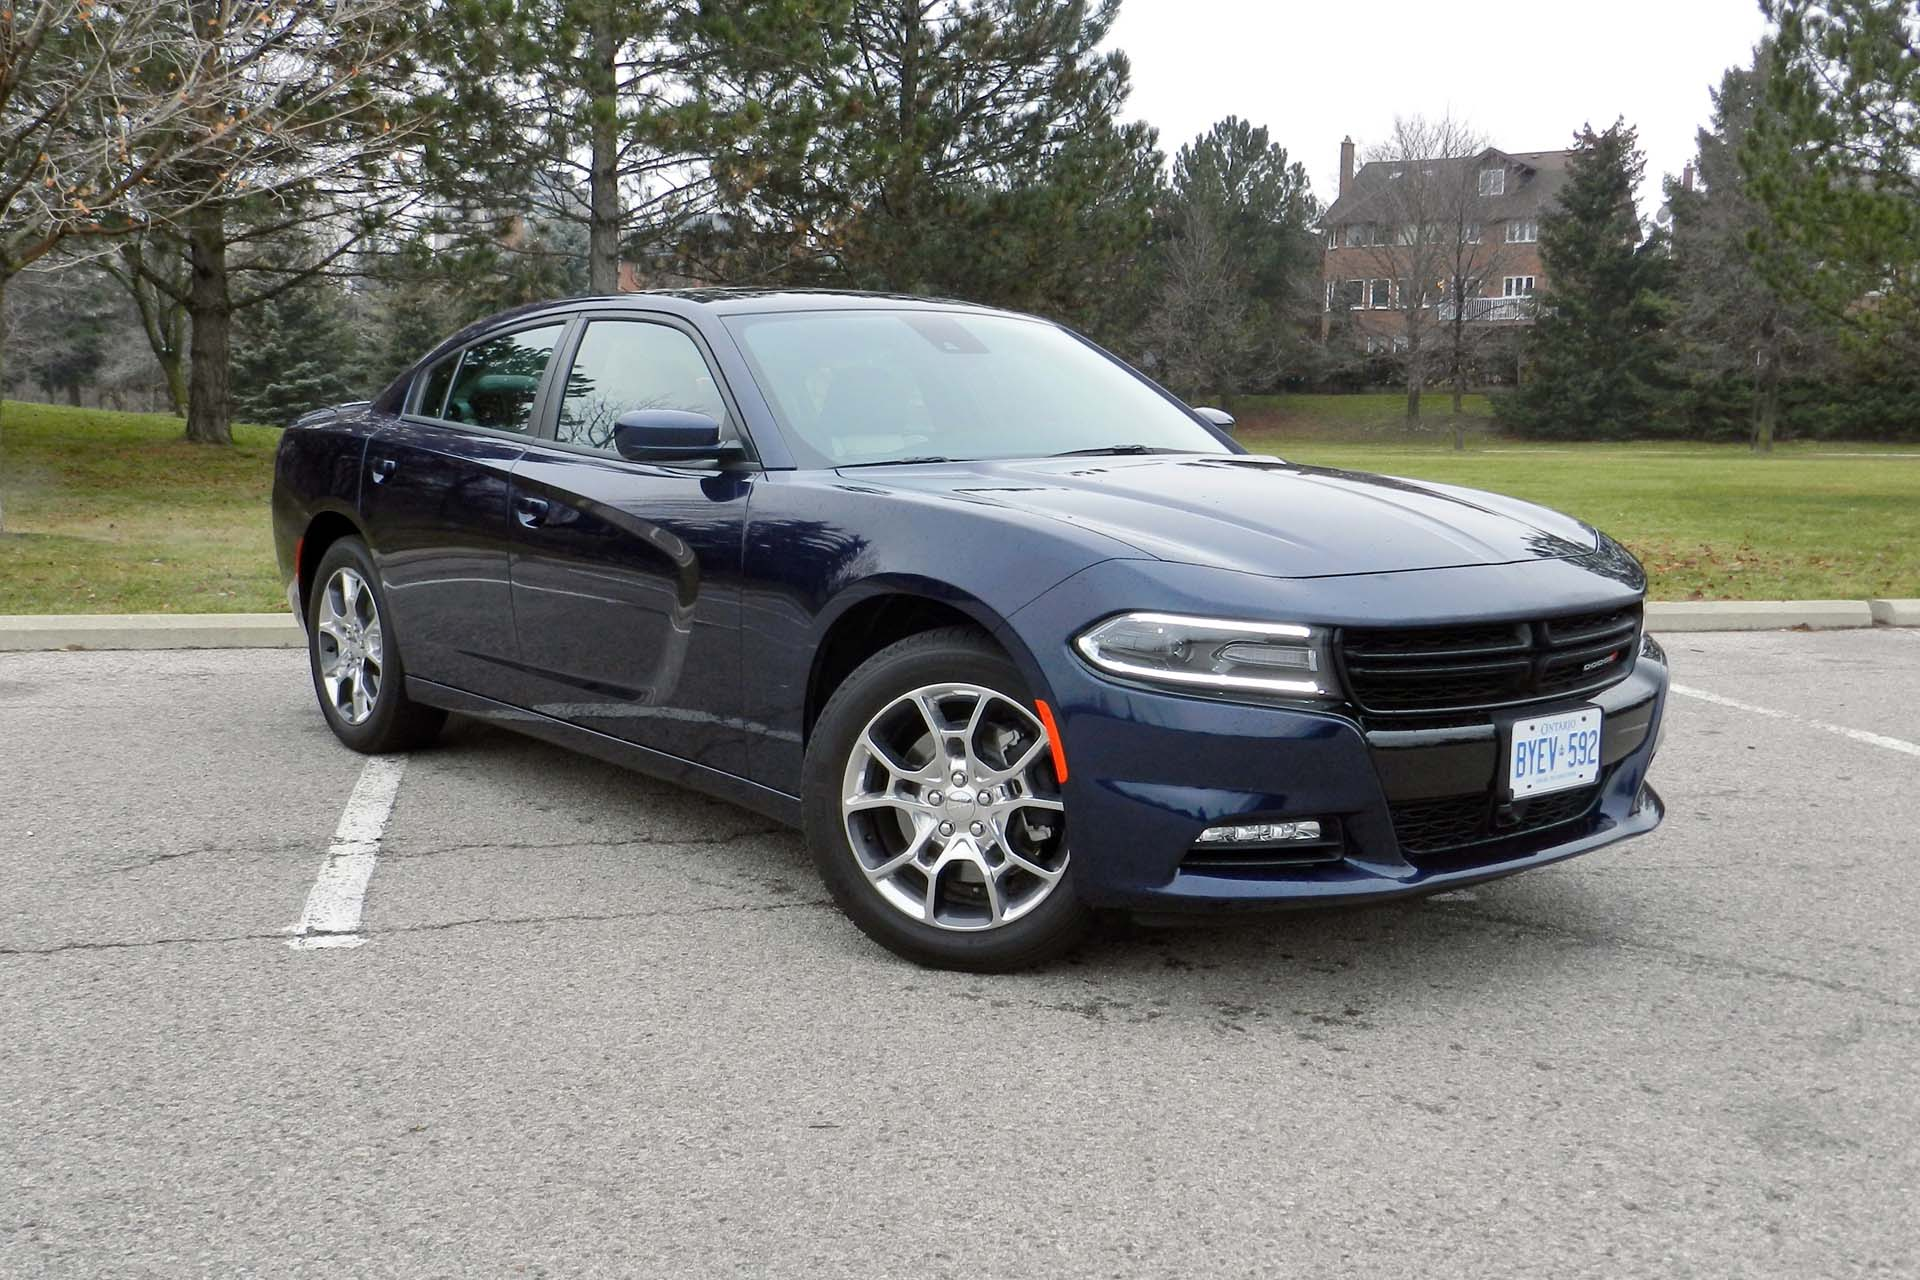 2014 Dodge Charger Styles amp Features Highlights  CarsDirect